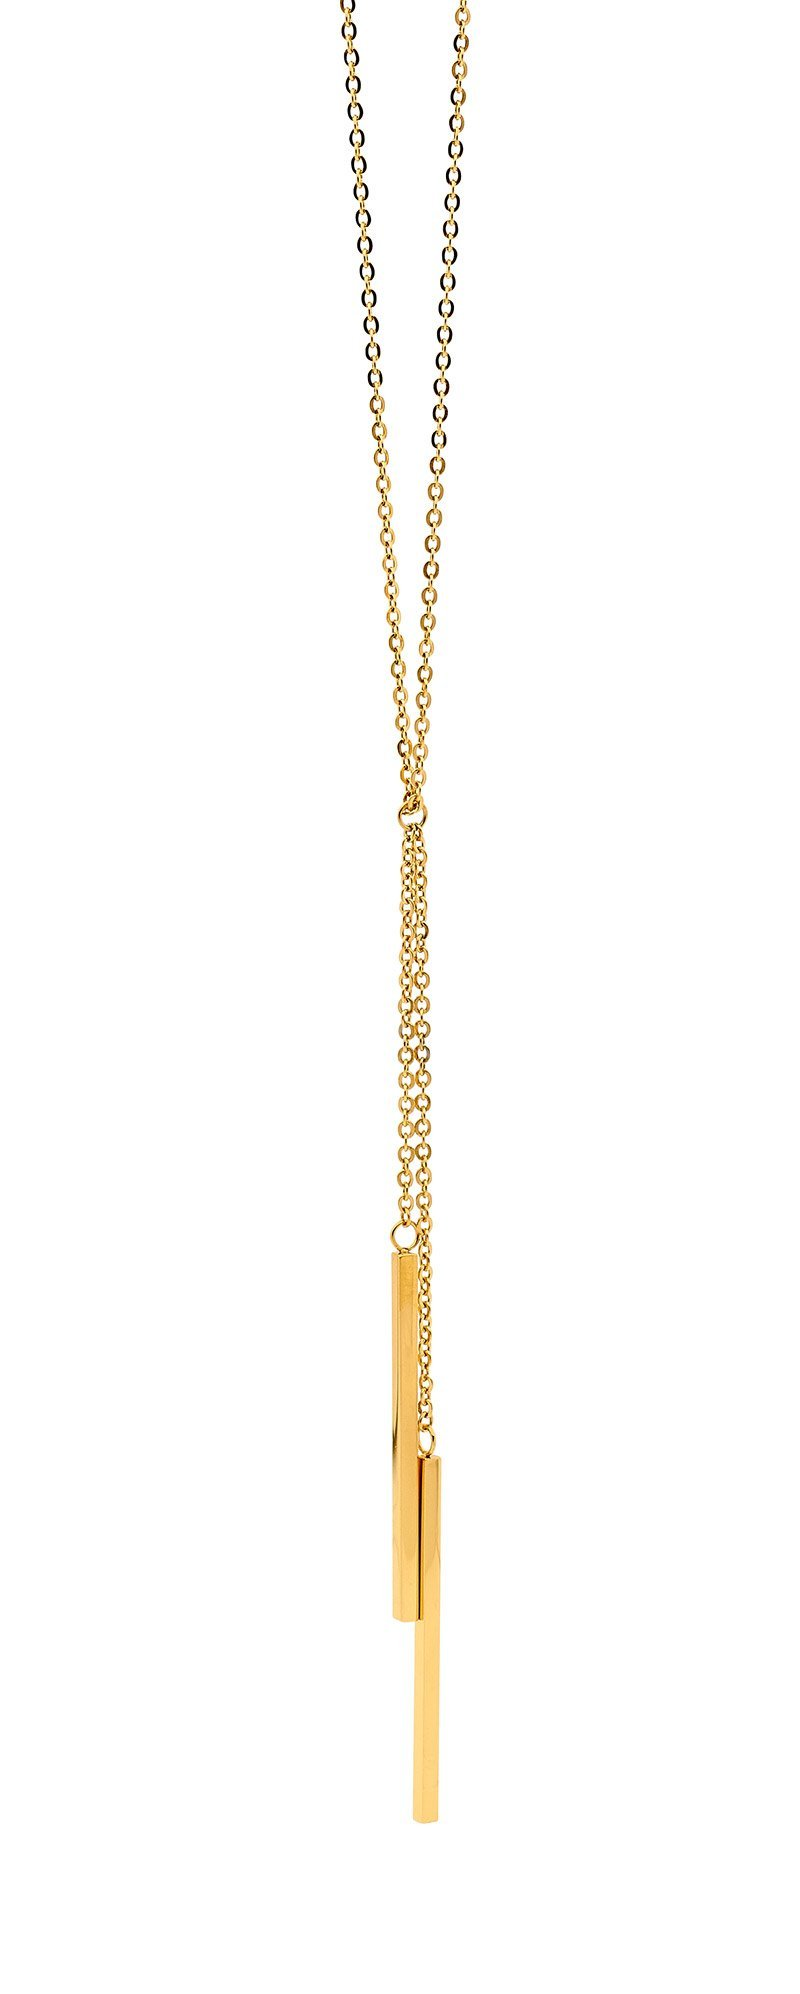 Stainless Steel 42cm Necklace, 2x drop Bars w/ Gold IP Plating